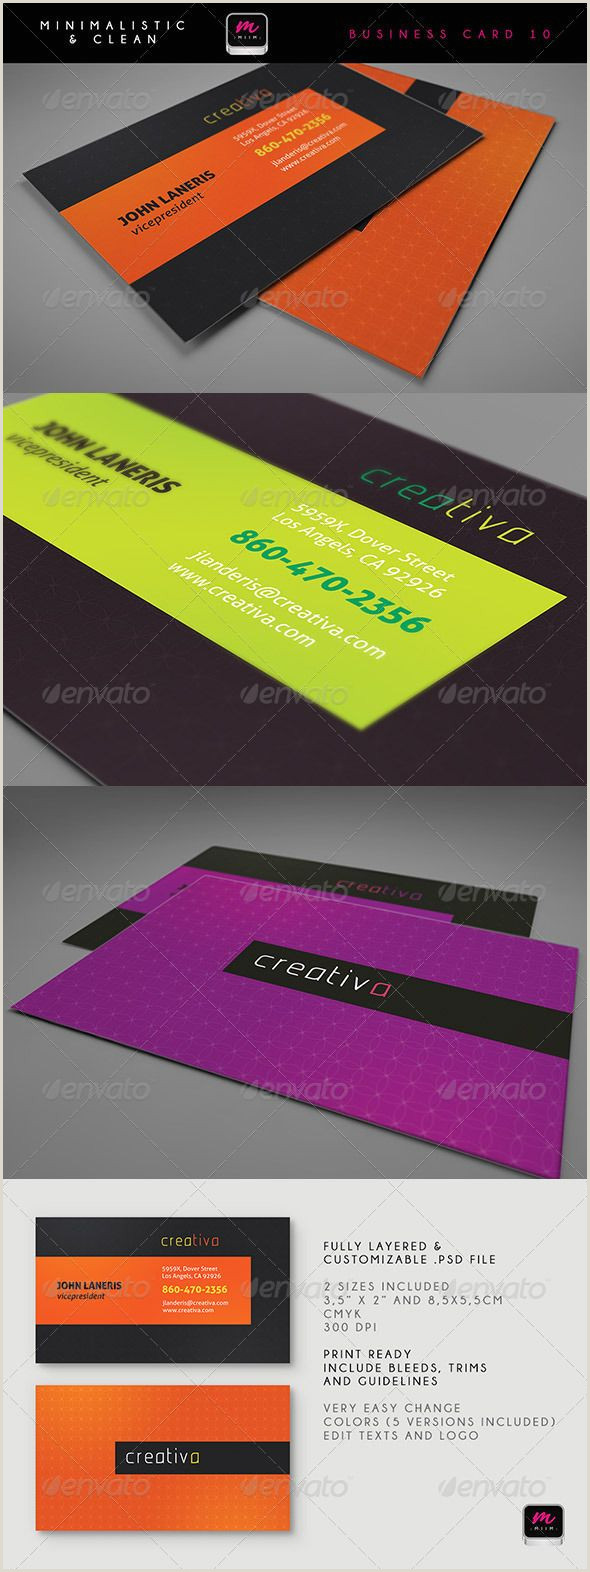 Best Business Cards Pinterest 100 [ Business Card Print Template ]